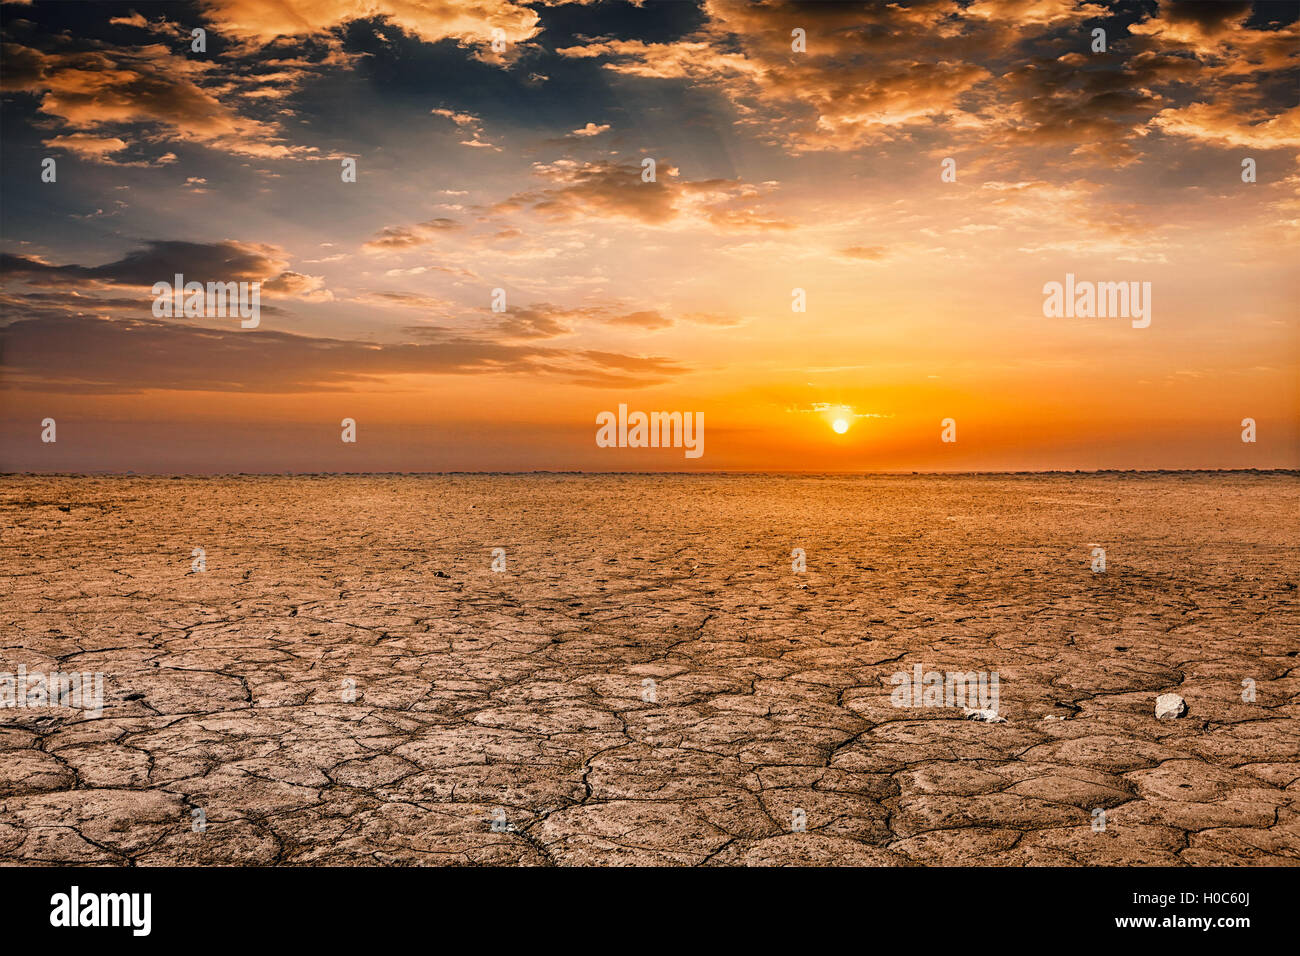 Cracked earth soil sunset landscape - Stock Image